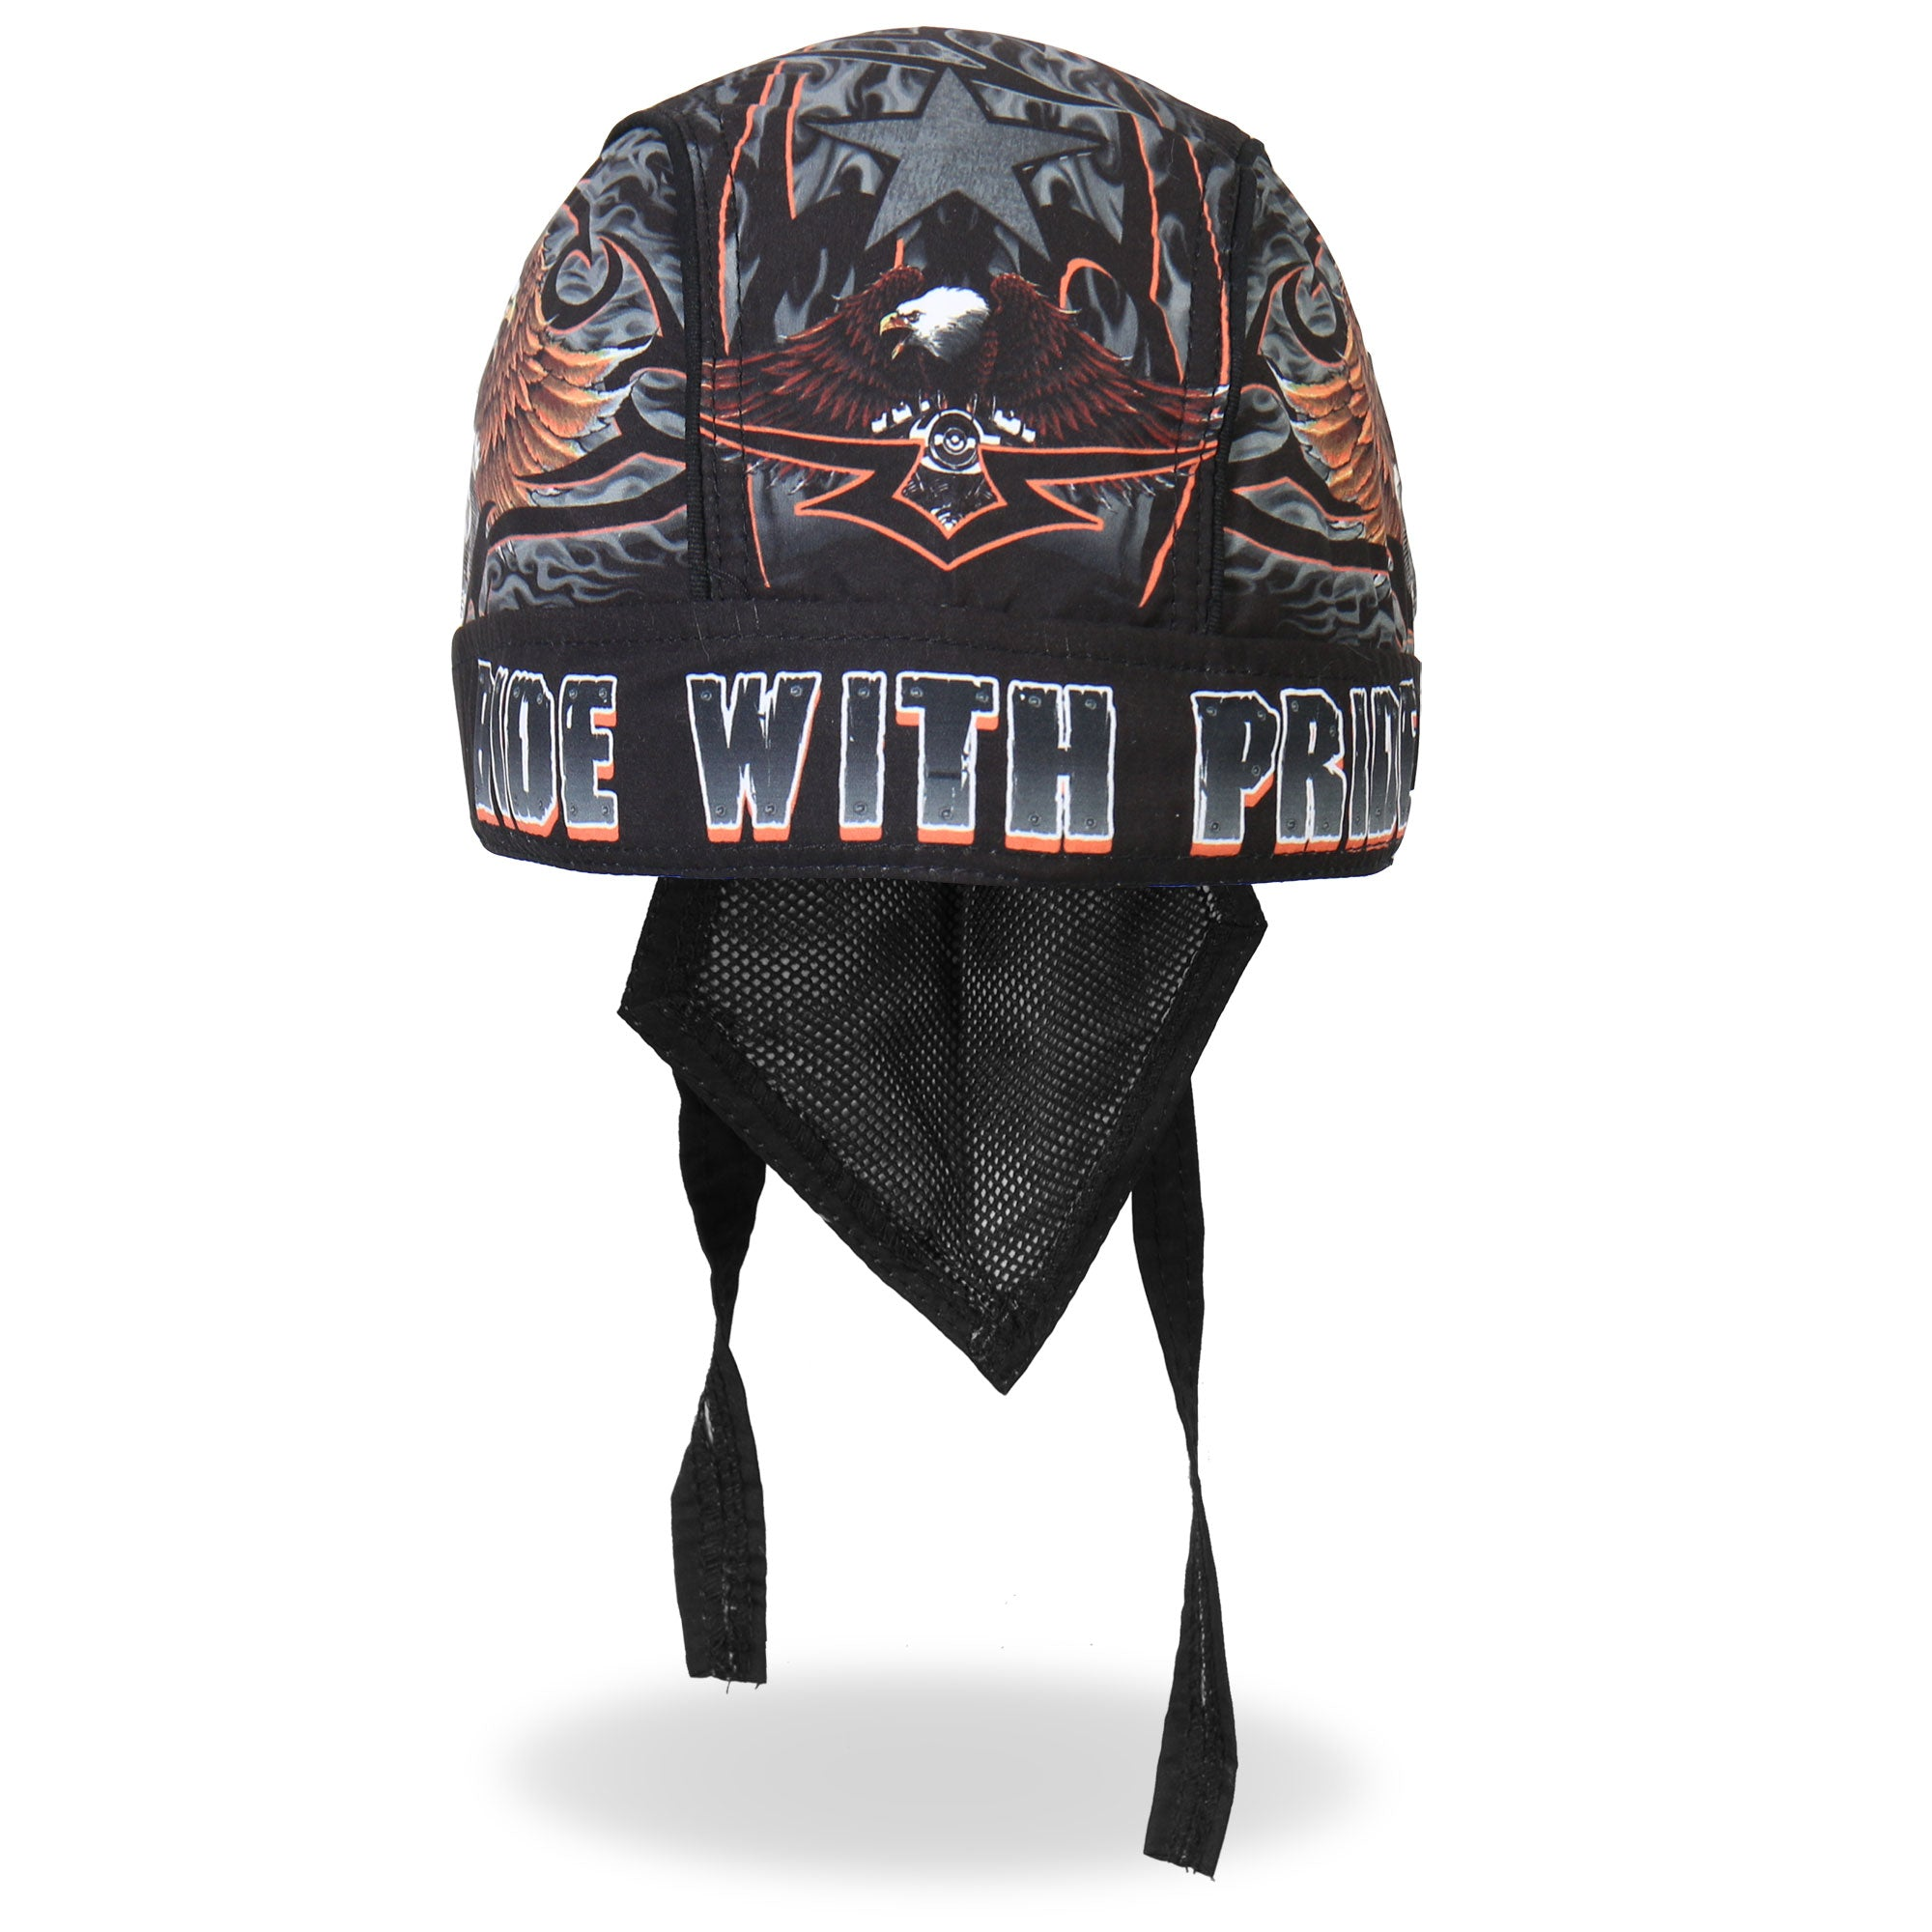 Hot Leathers Ride with Pride Headwrap